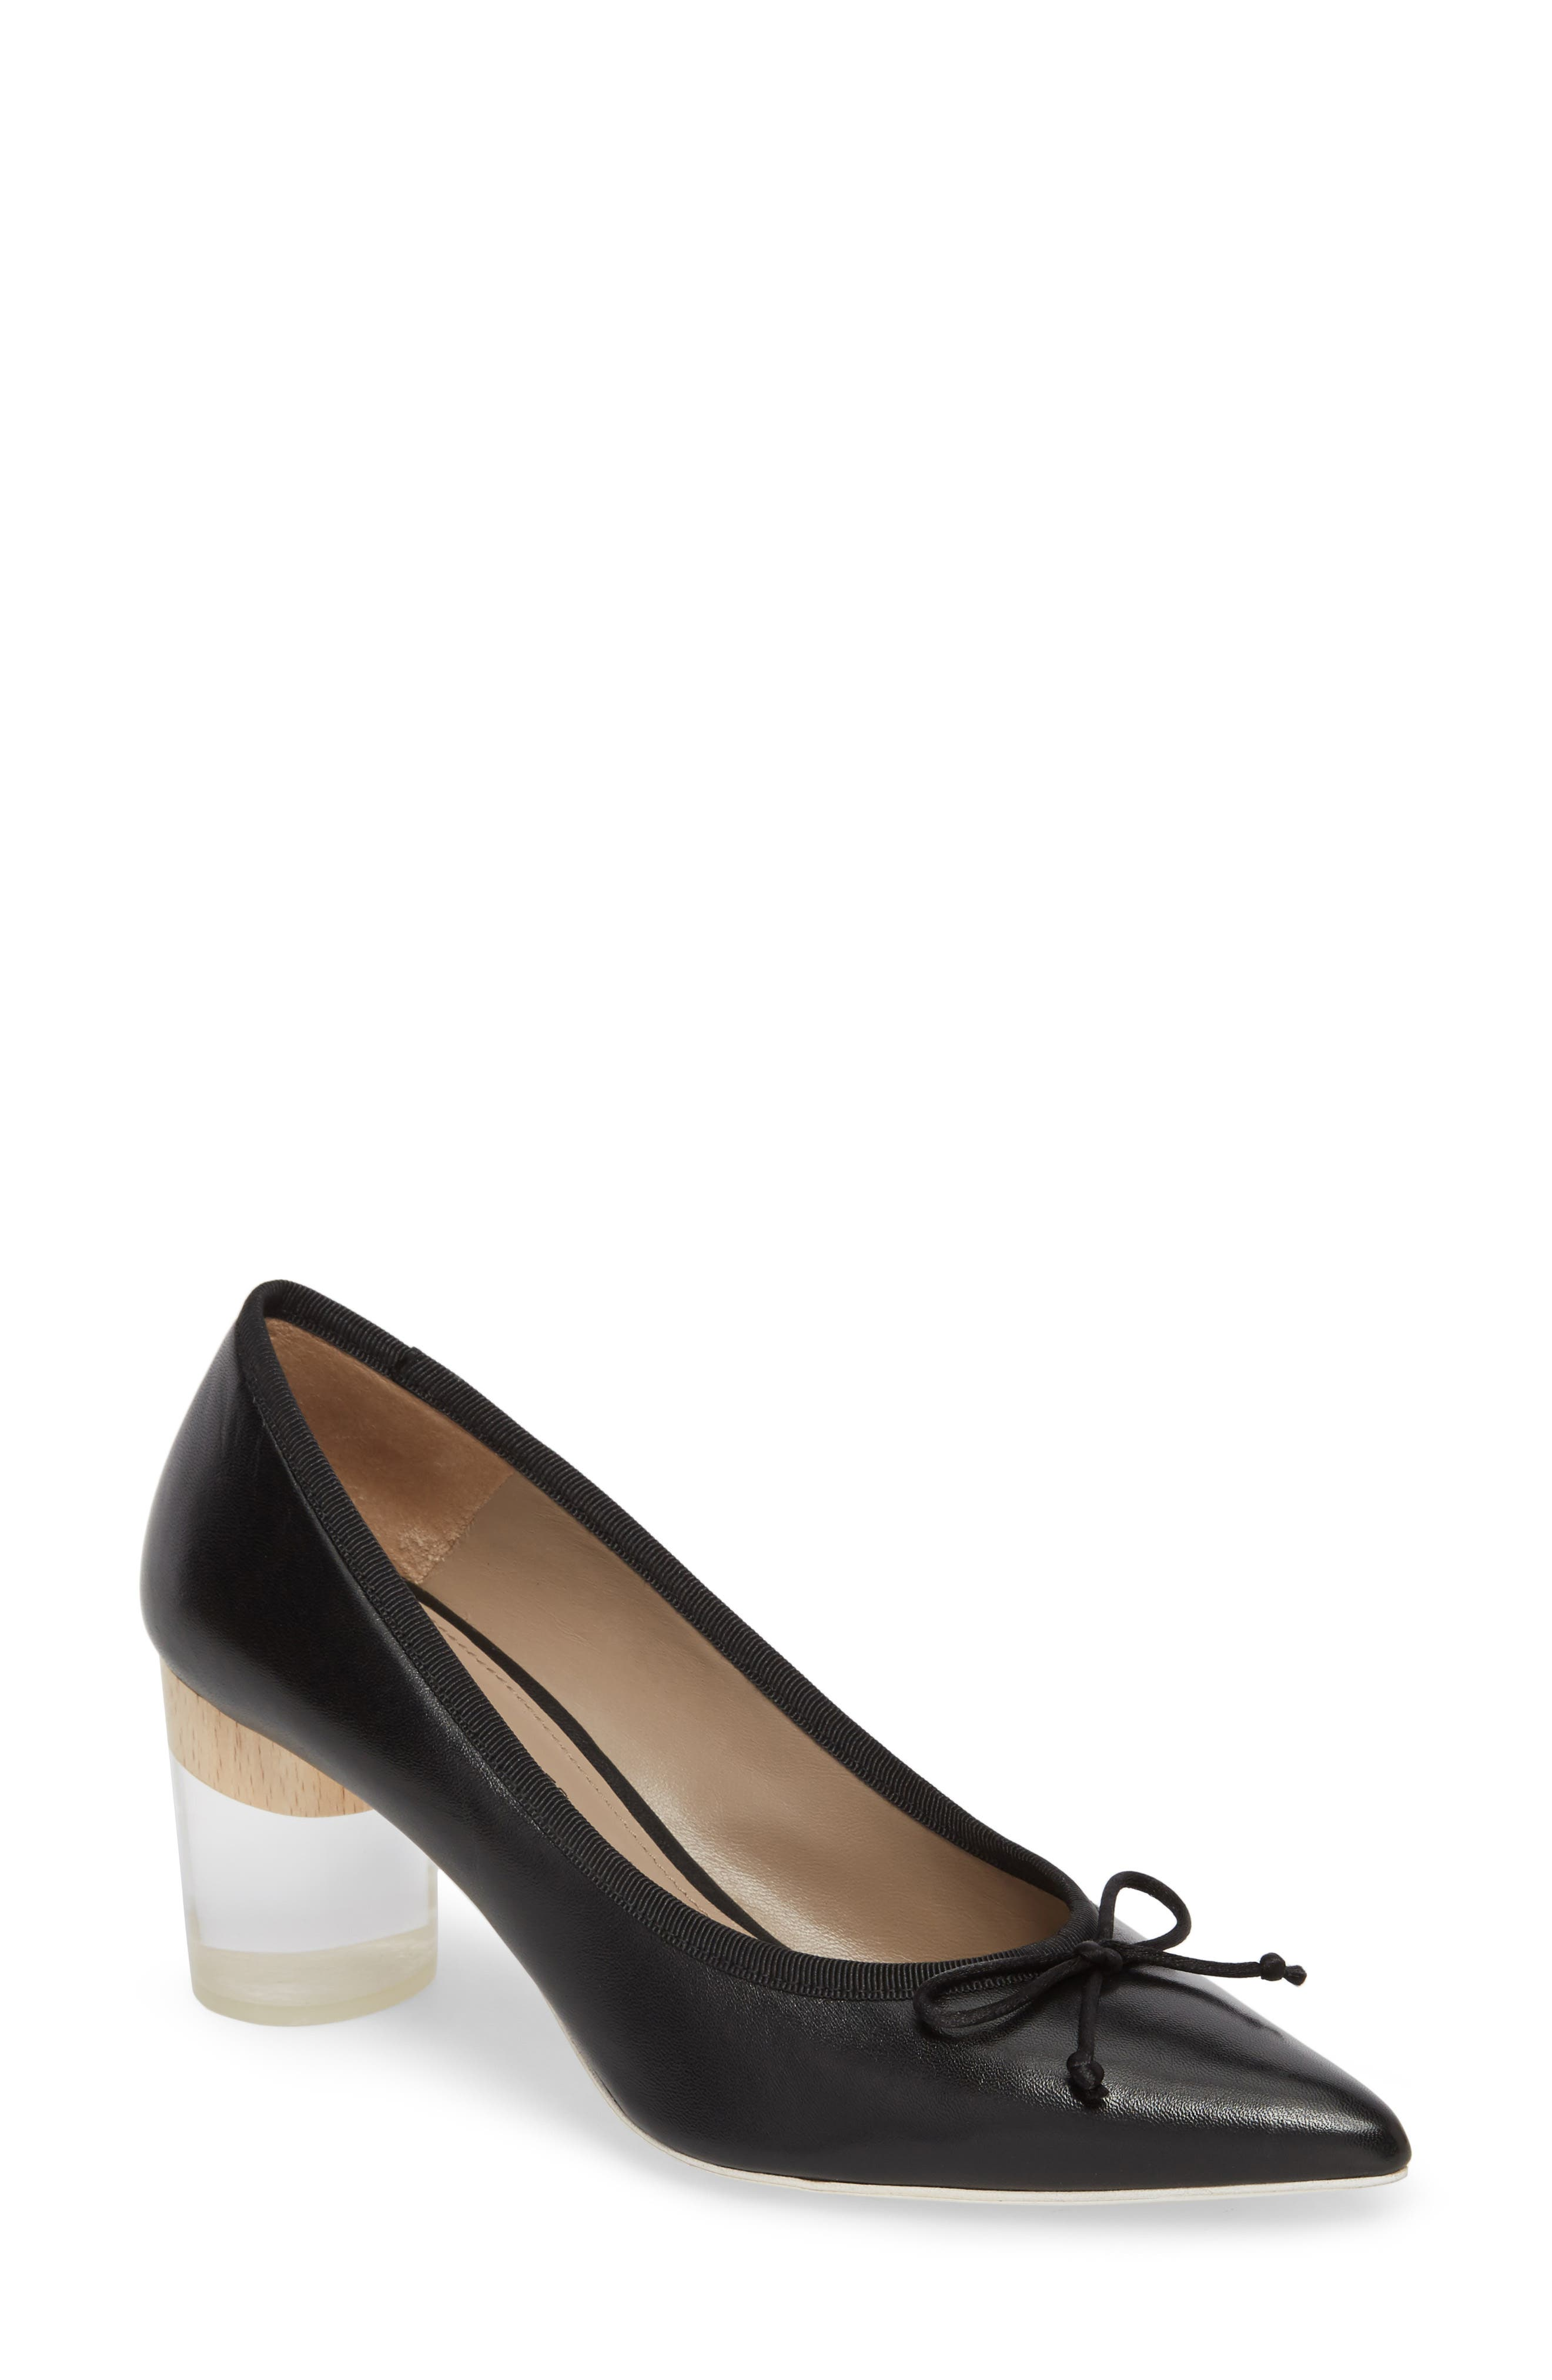 Asia Pointy Toe Pump,                             Main thumbnail 1, color,                             Black Leather